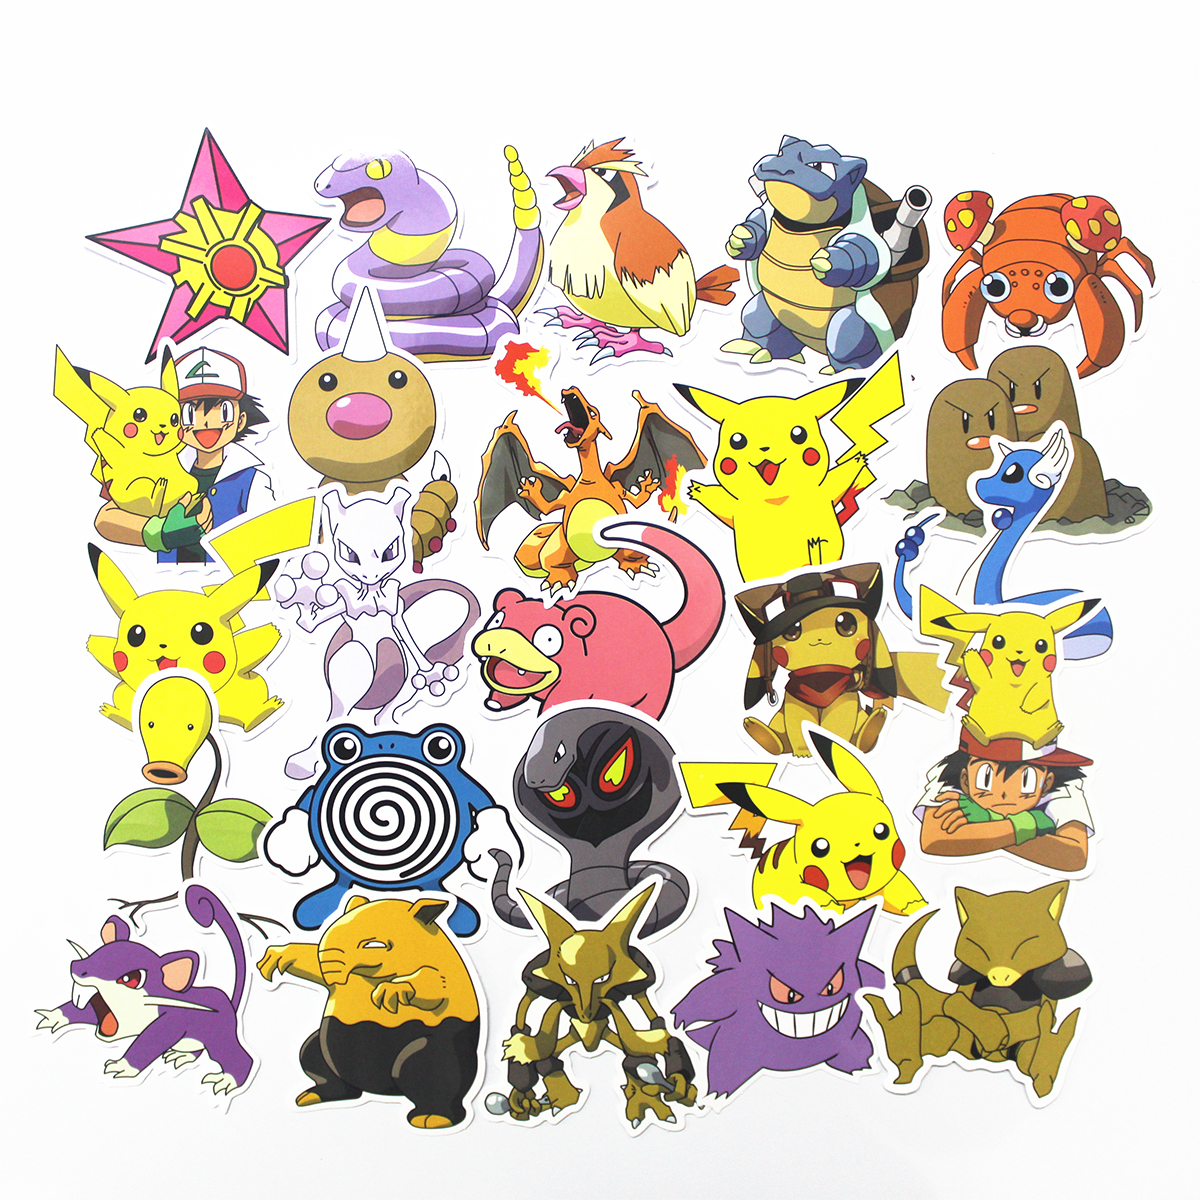 NEW 80Pcs Anime Pikachu Waterproof Laptop Car Stickers For Trunk Skateboard Guitar Fridge Decal Toy Stickers